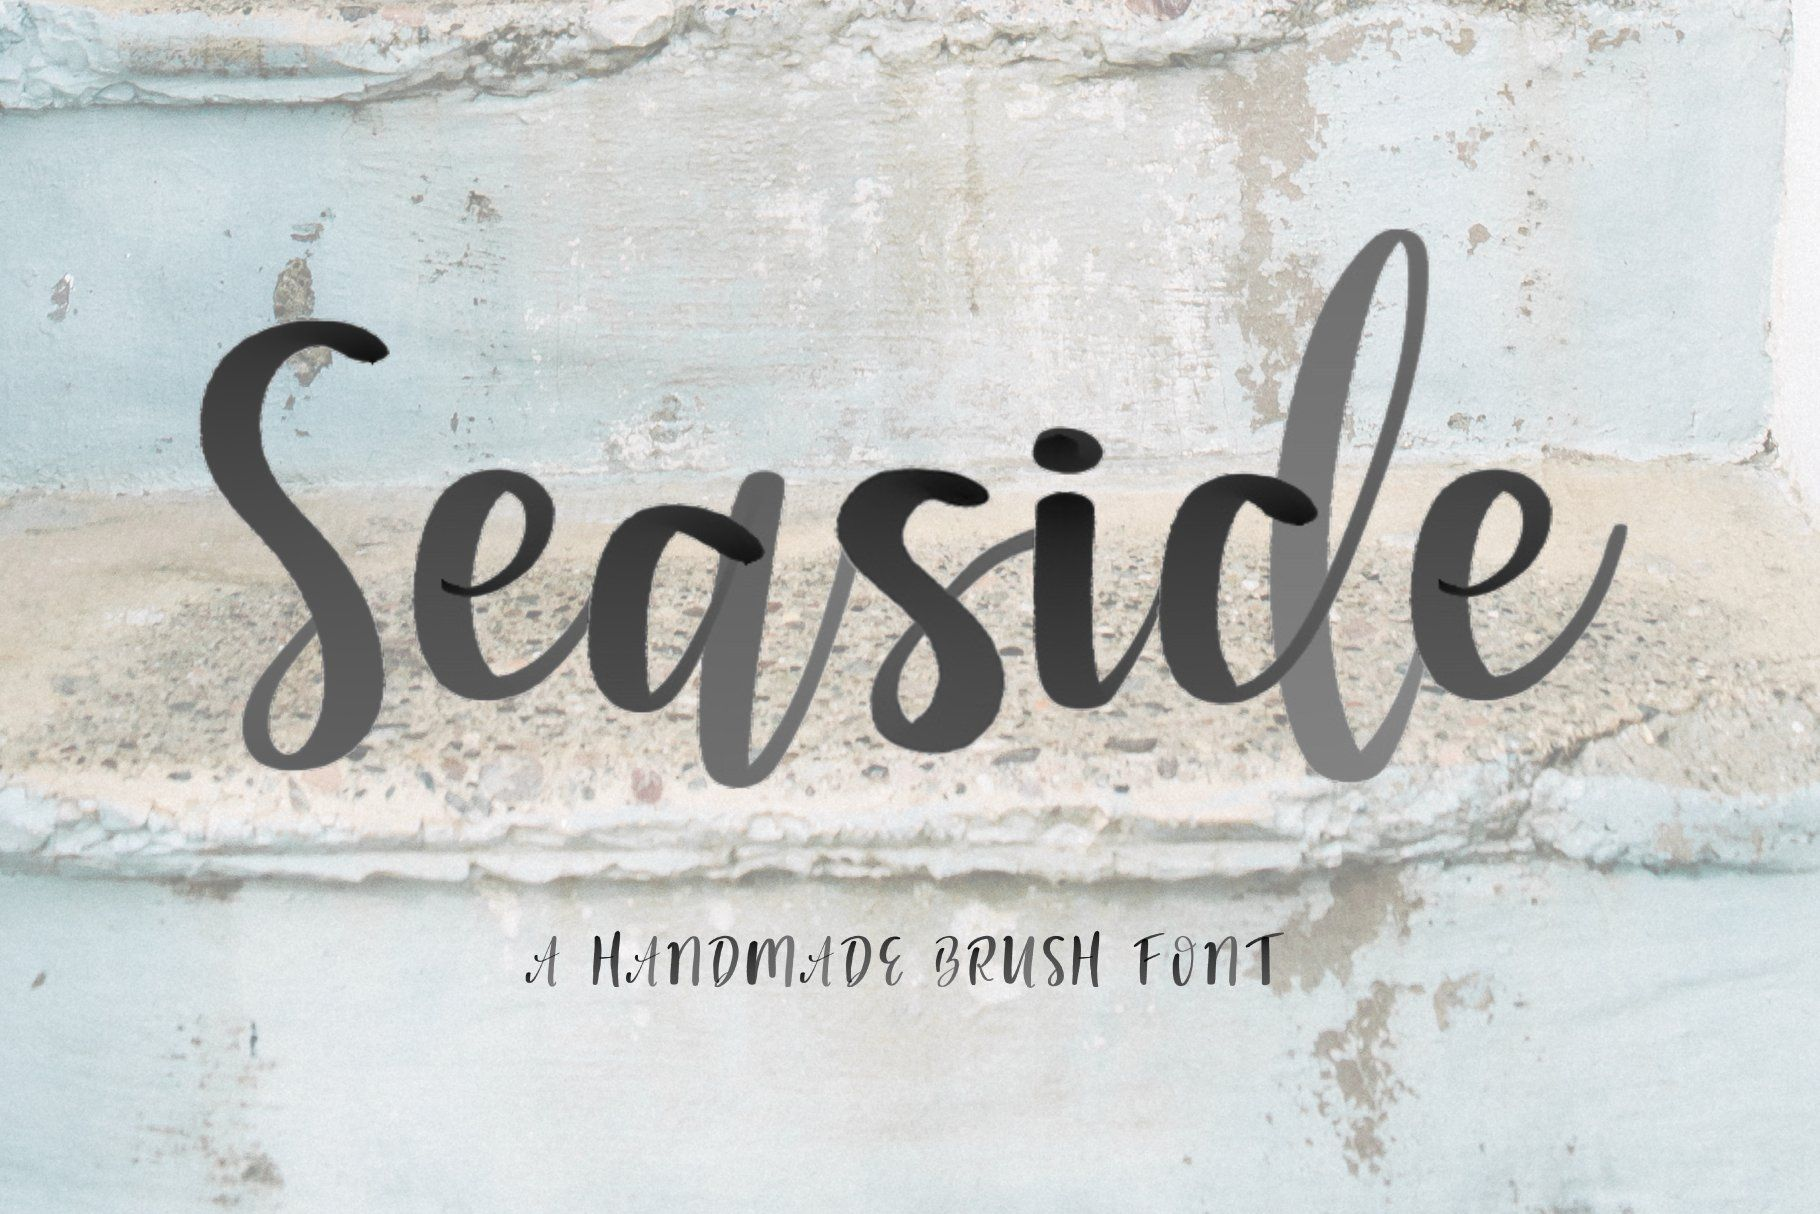 Important To Install Use The Svg Version Of Seaside You Have